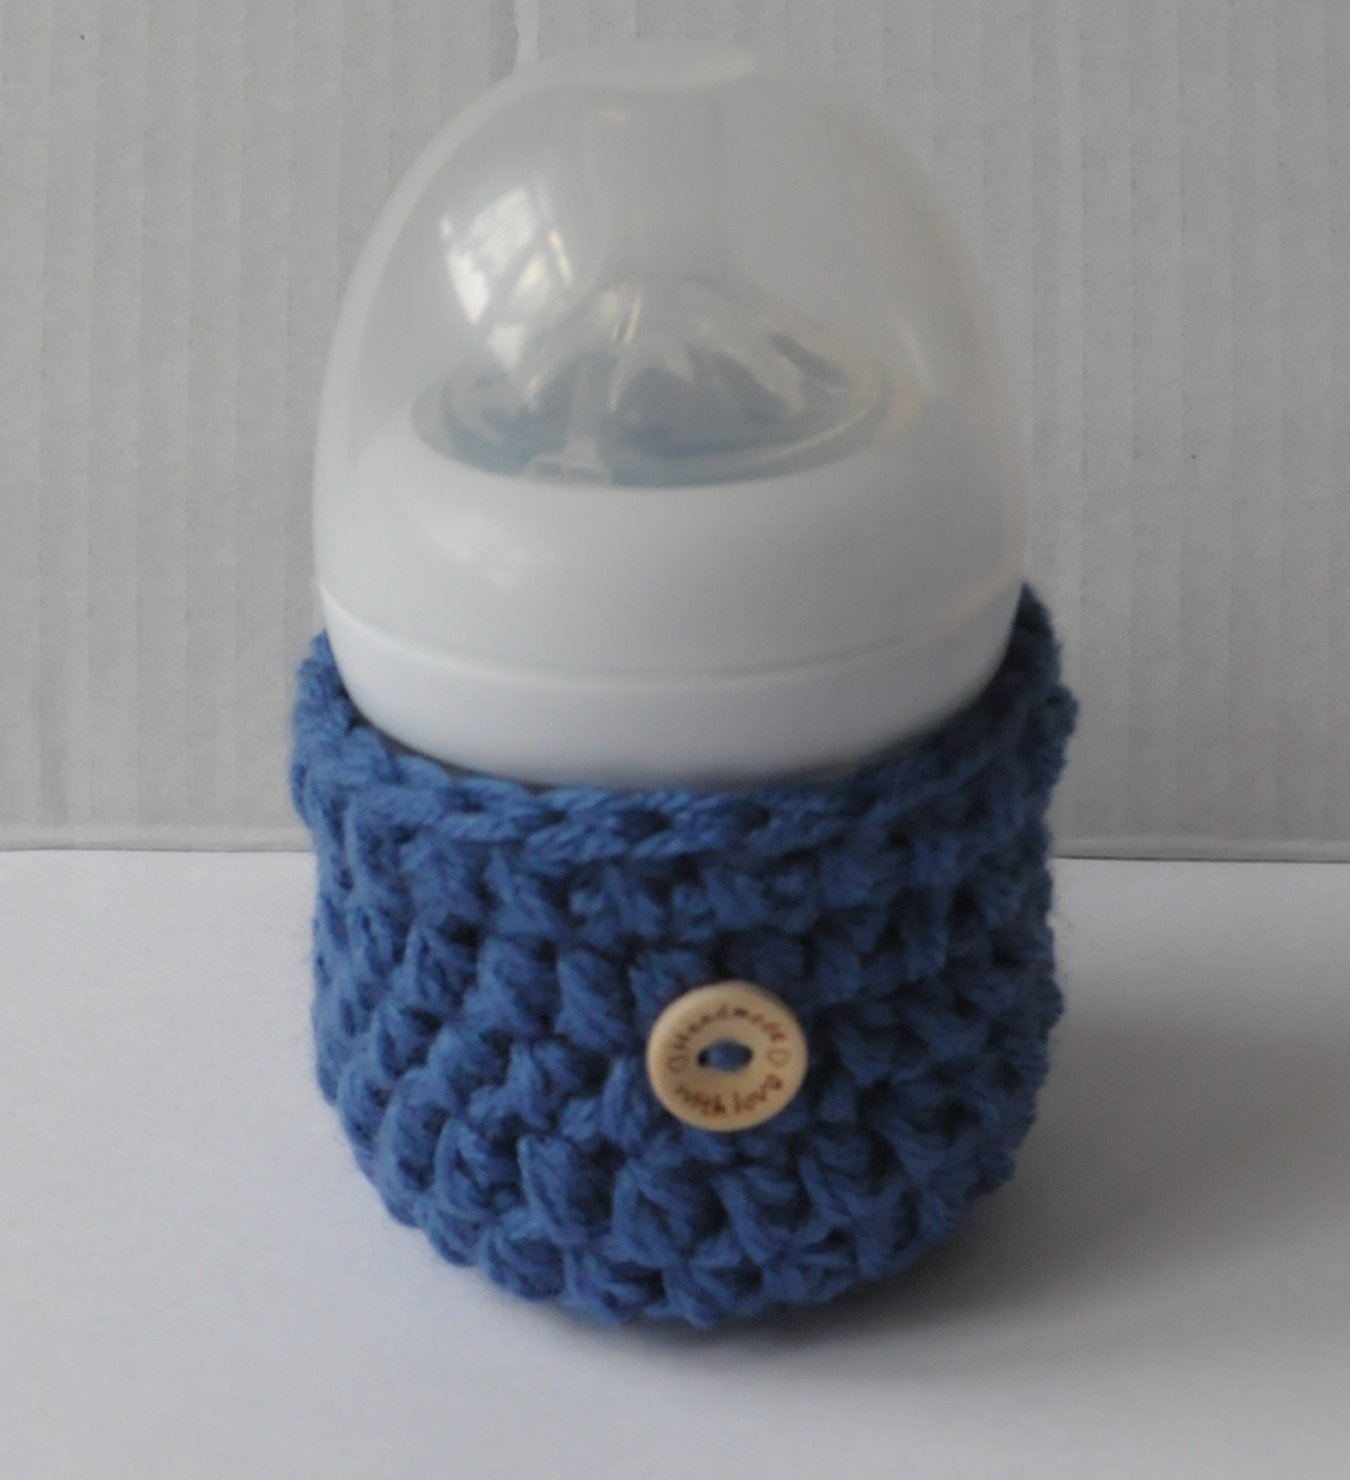 Handmade Crochet Baby Bottle Cover Warmers Cozy Infant Accessory Gift Handmade High Quality - Denim Blue